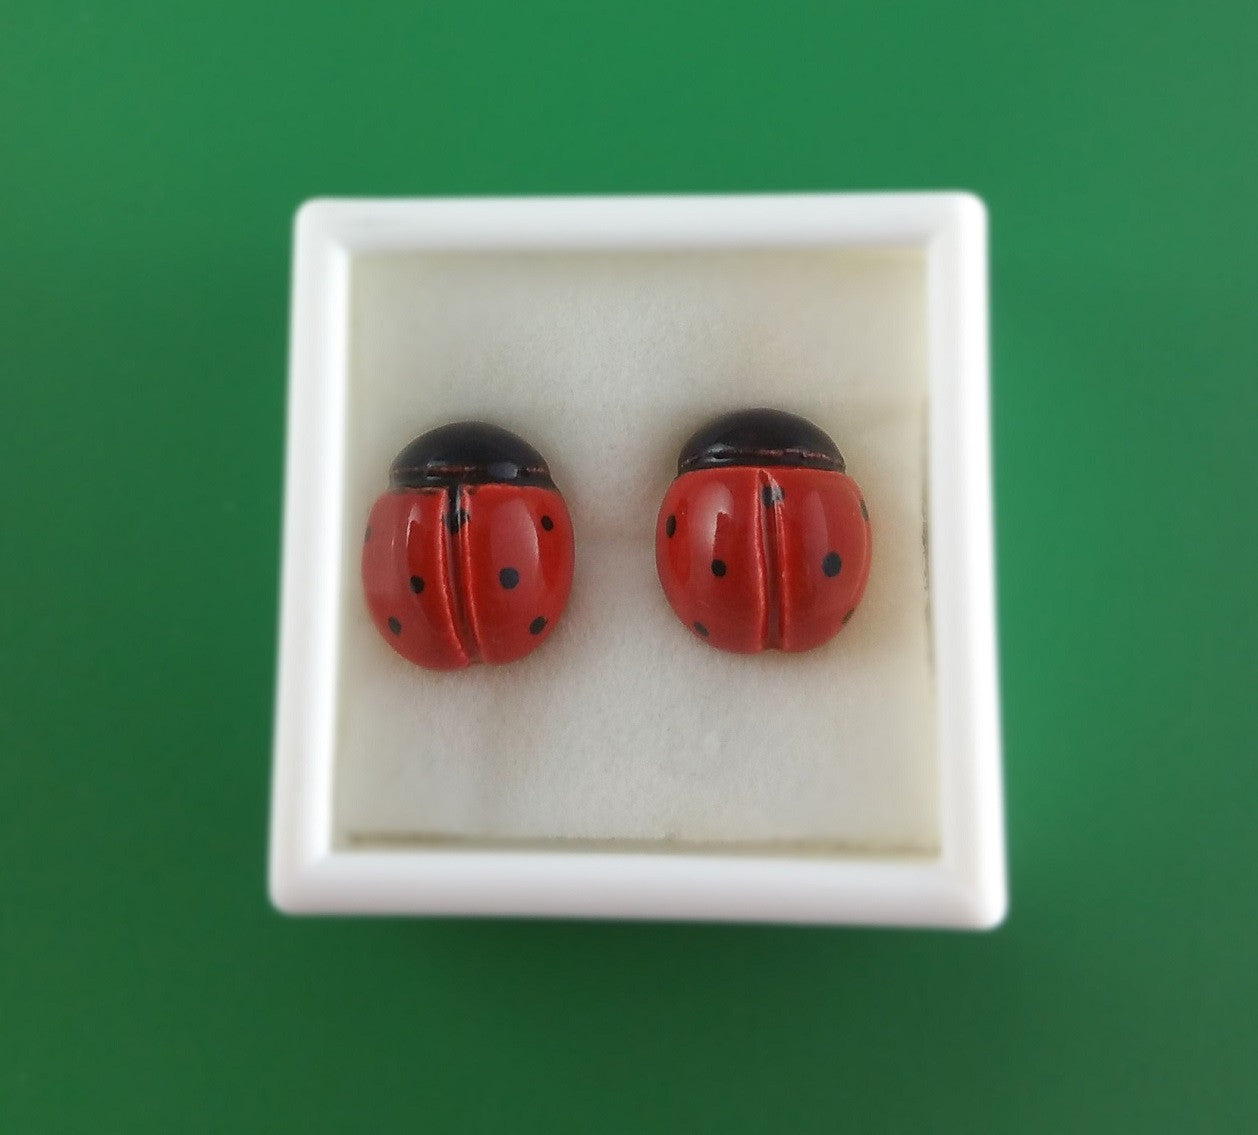 Large porcelain ladybug stud earrings by Joseph Chiang